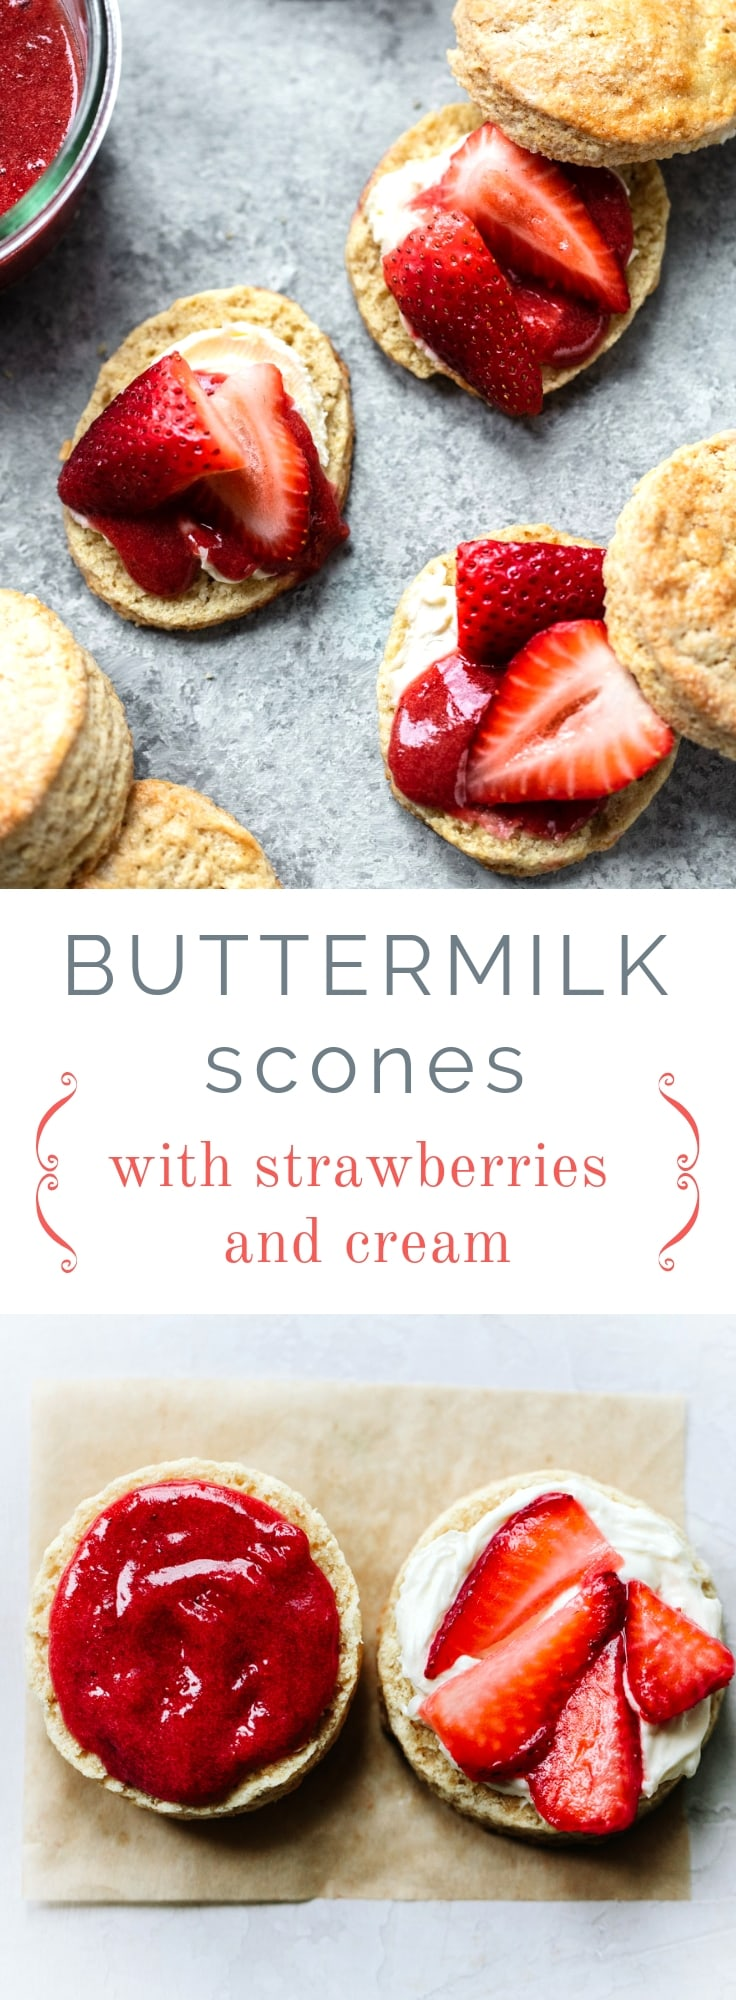 Flaky Buttermilk Scones with Strawberries and Mascarpone